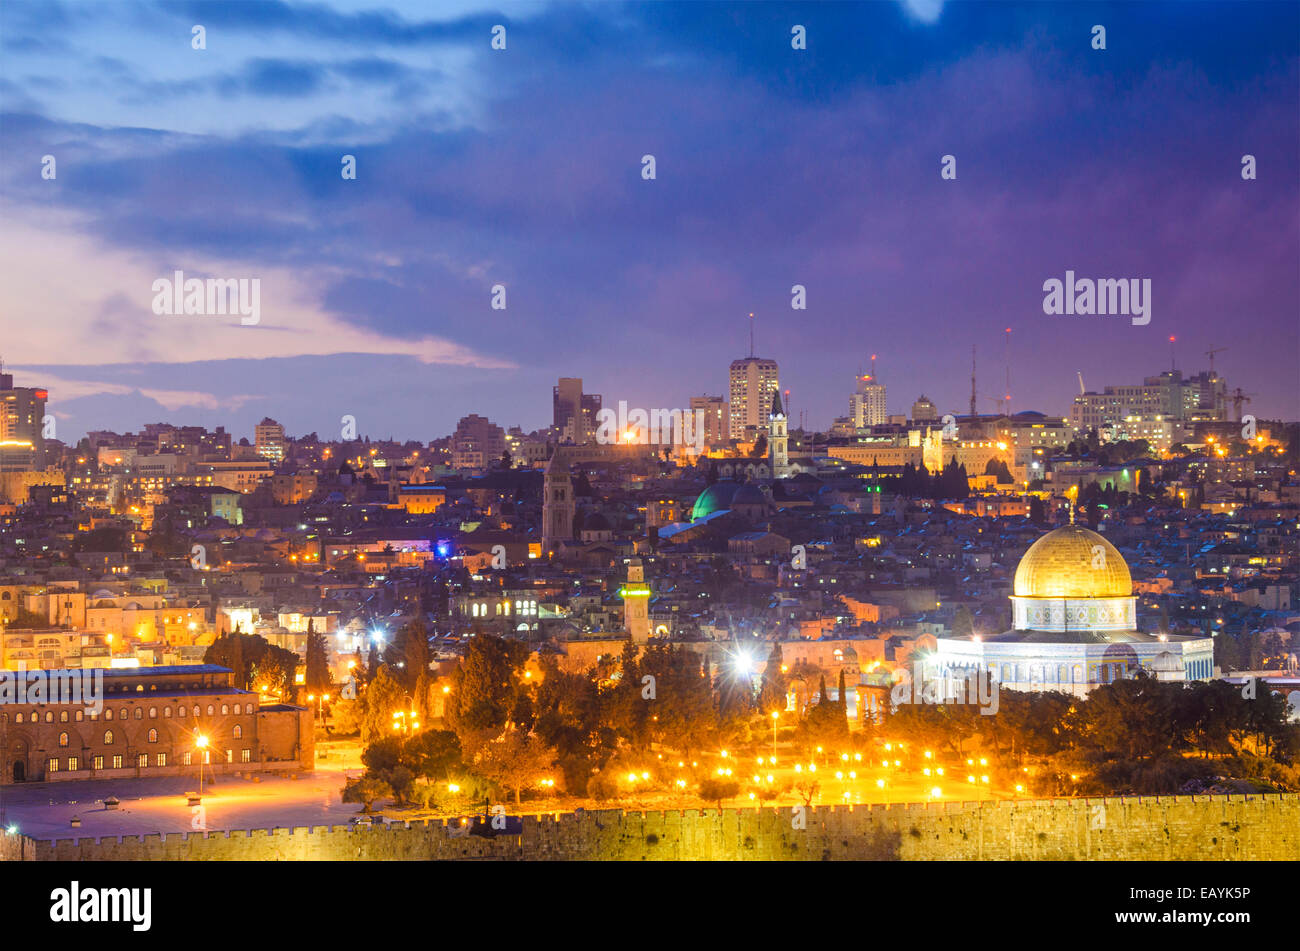 Jerusalem, Israel old city skyline. - Stock Image